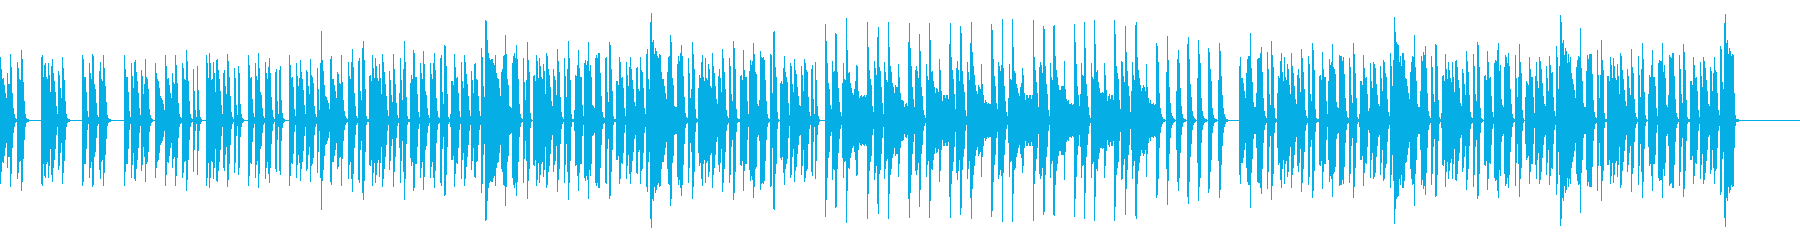 Missing play accompaniment between disappointing scenes's reproduced waveform